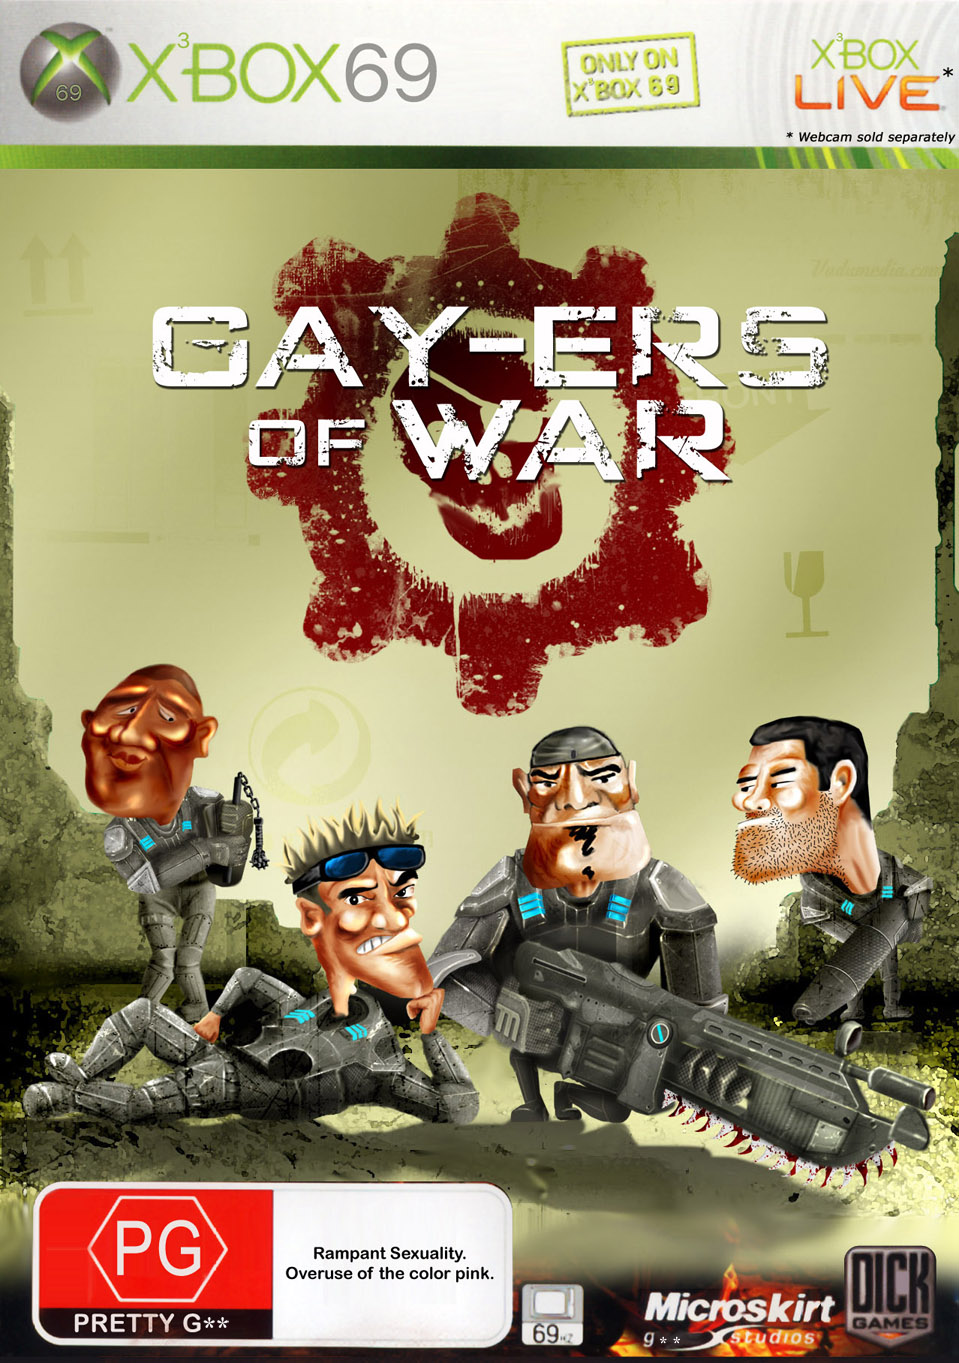 Gears_Of_War_Spoof_by_bobbyrock.jpg